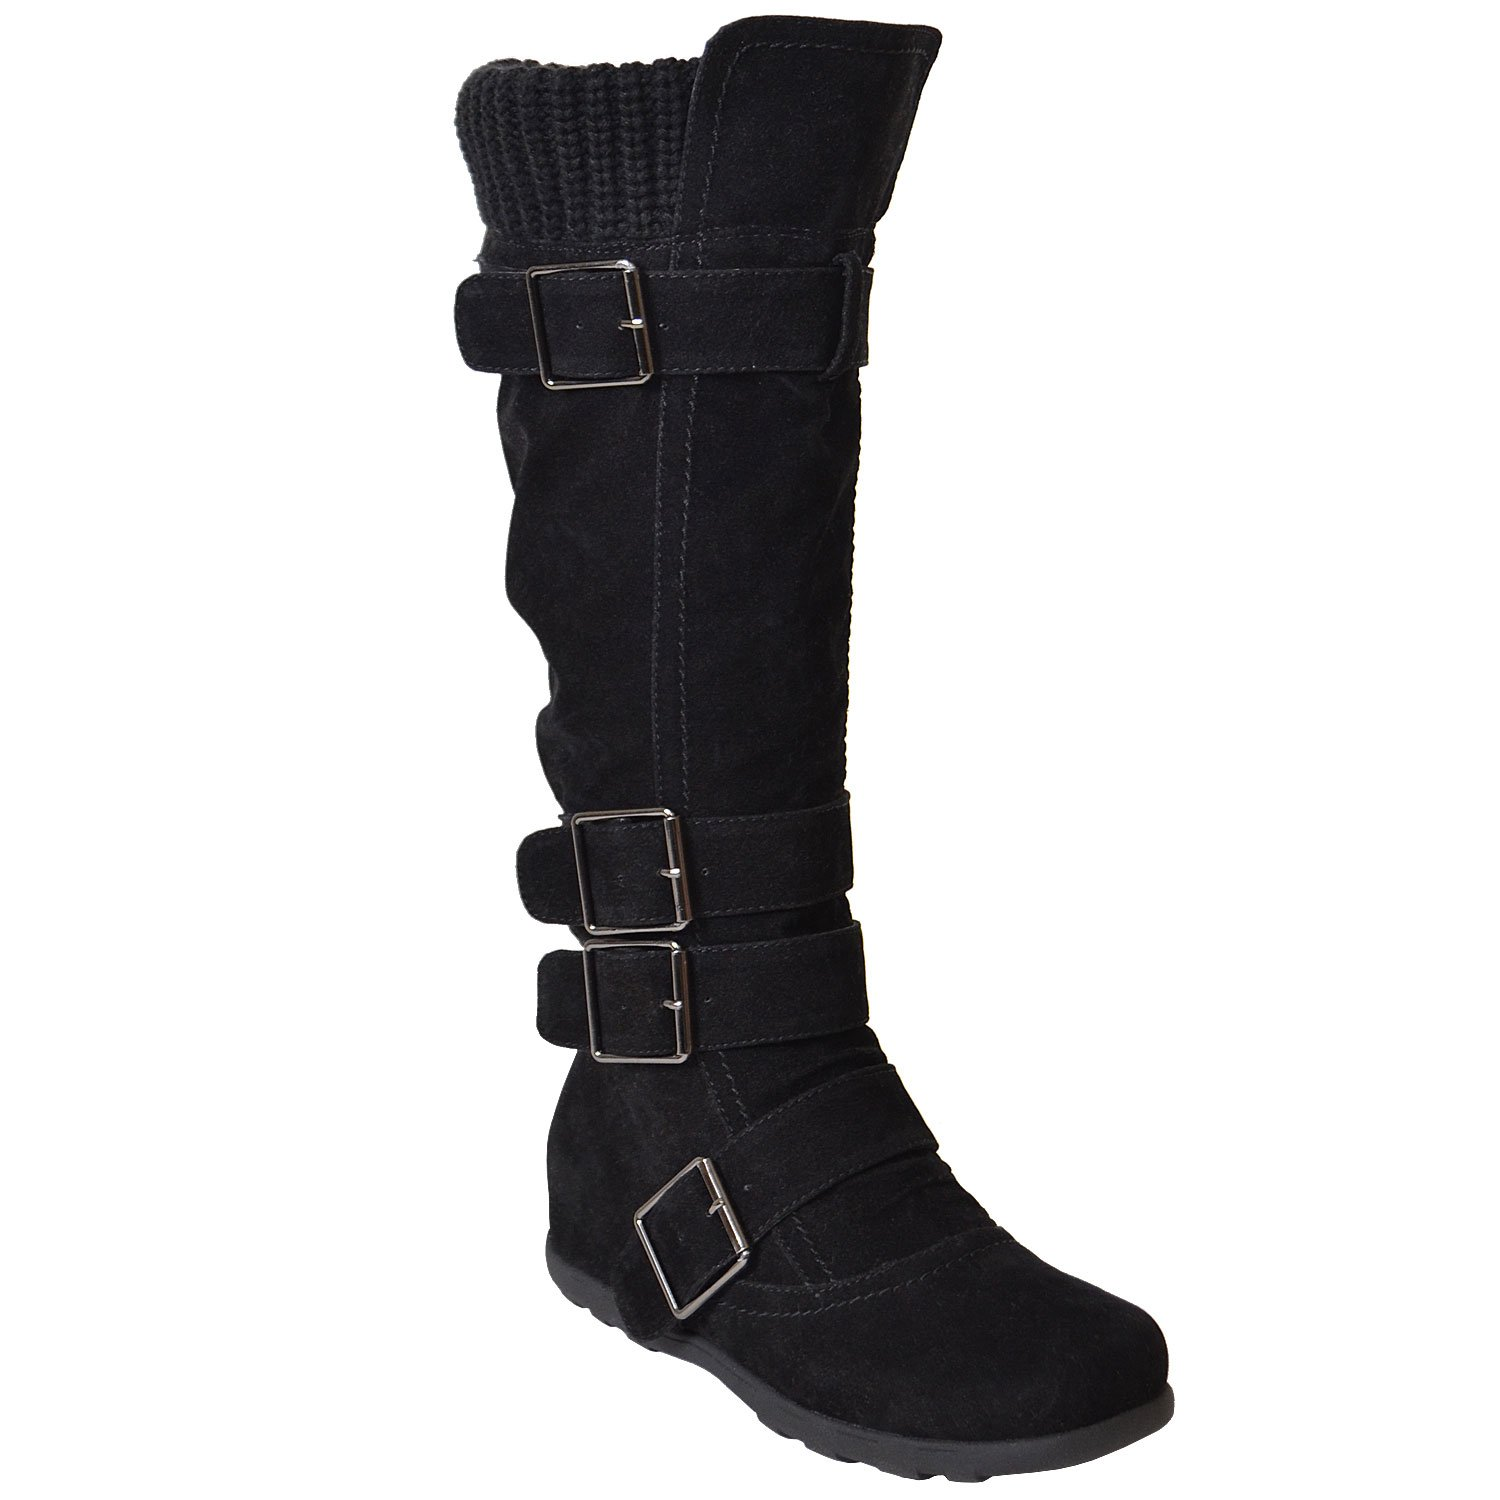 Womens Mid Calf Knee High Boots Ruched Suede Knitted Calf Buckles Rubber Sole Black SZ 9